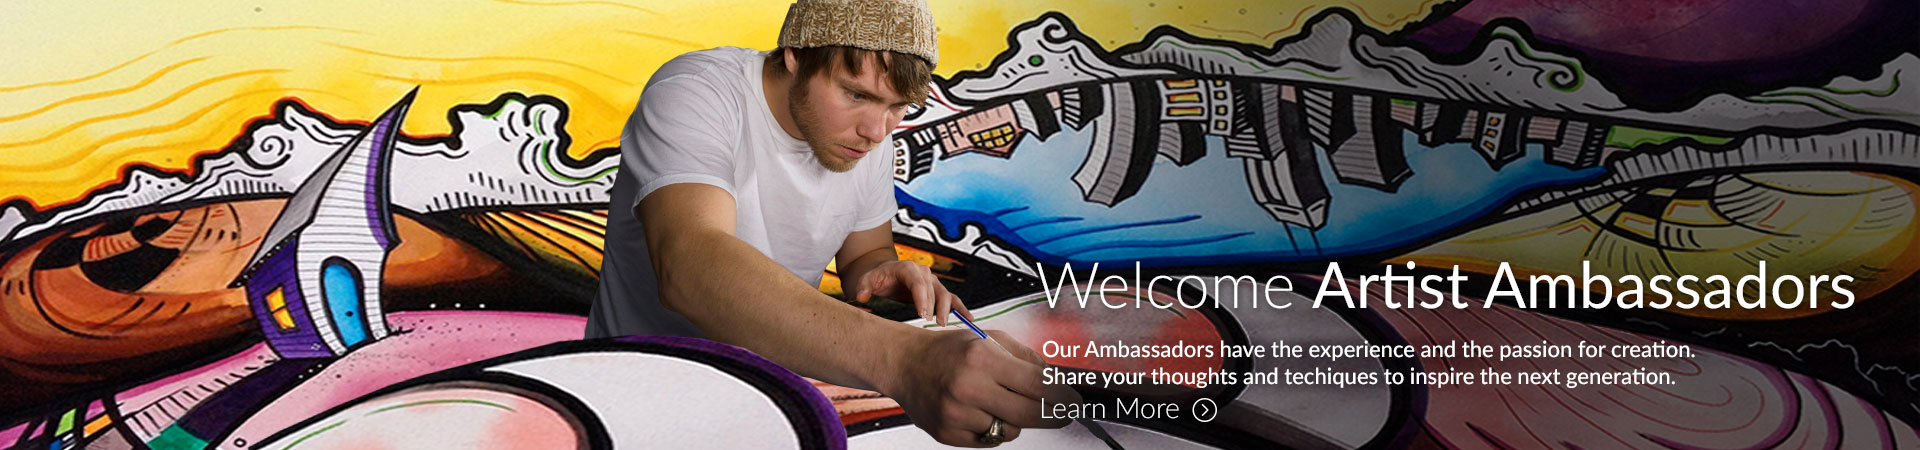 Become an Artist Ambassador. Our Ambassadors have the experience adn the passion for creation. Share your thoughts and techniques to inspire the next generation.